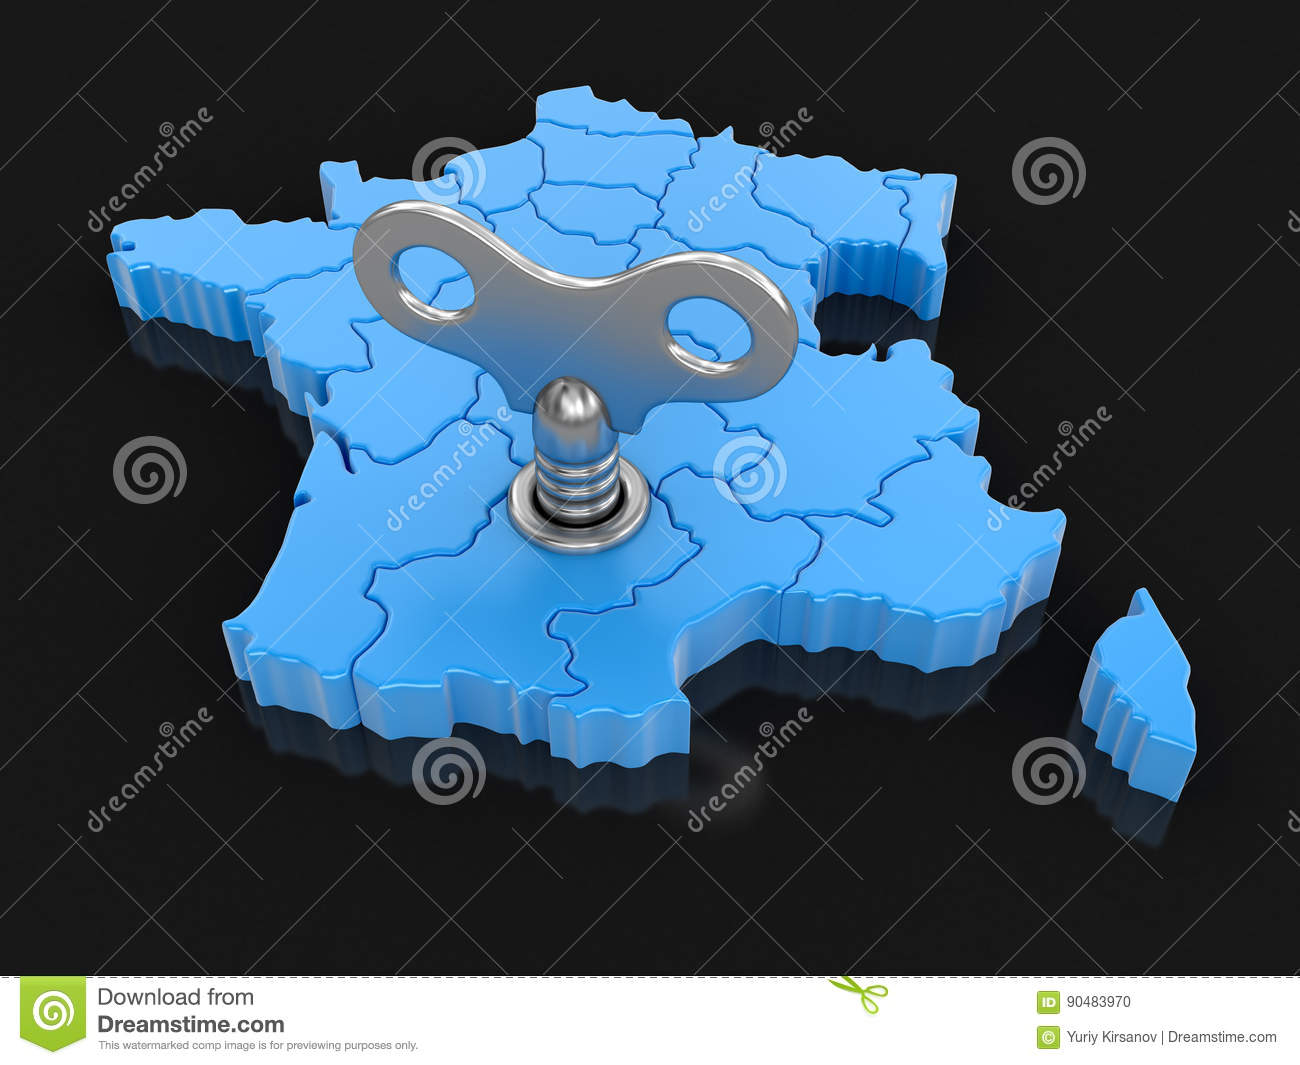 Map Of France With Key.Map Of France With Winding Key Stock Illustration Illustration Of